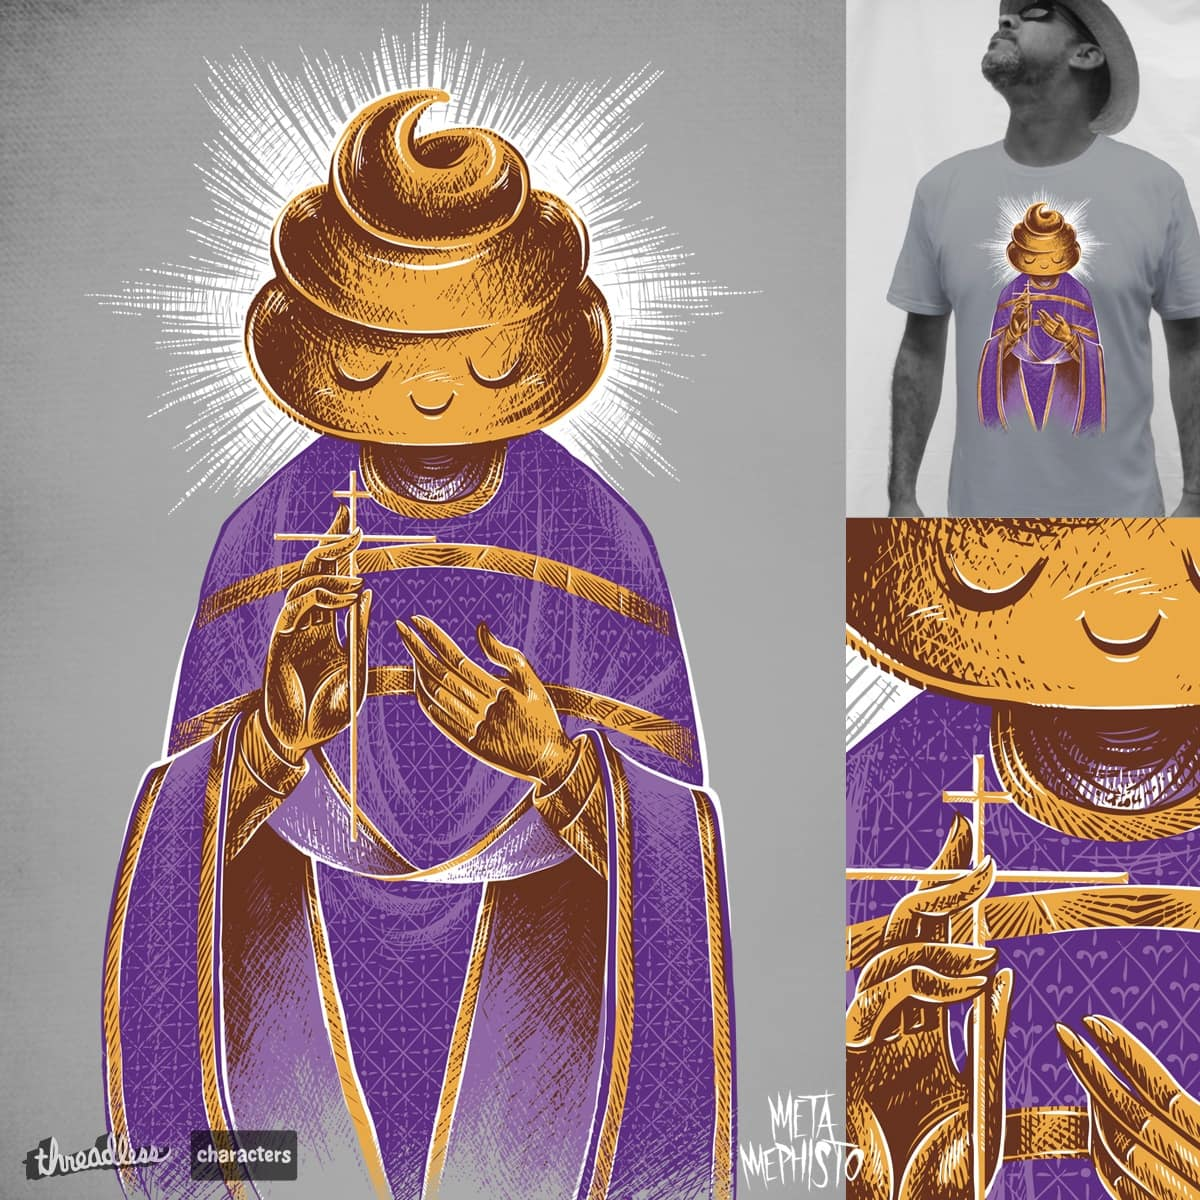 The Holy Sh*t by MetaMephisto on Threadless